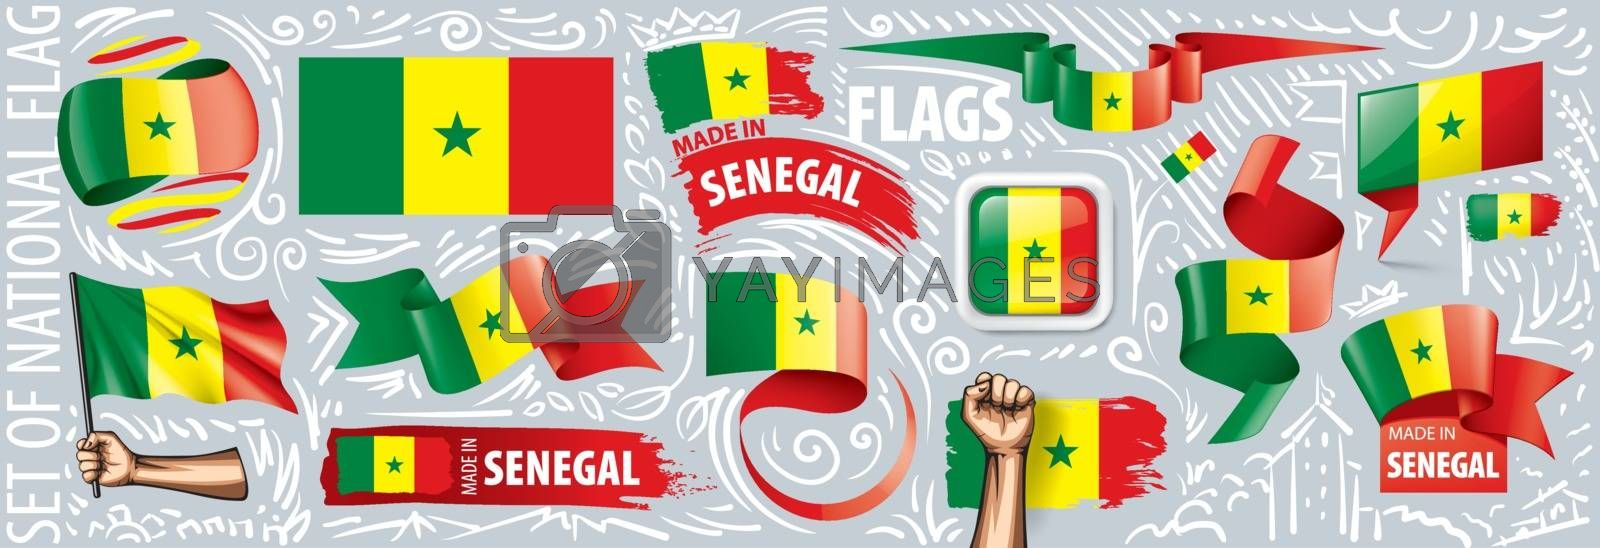 Vector set of the national flag of Senegal in various creative designs.